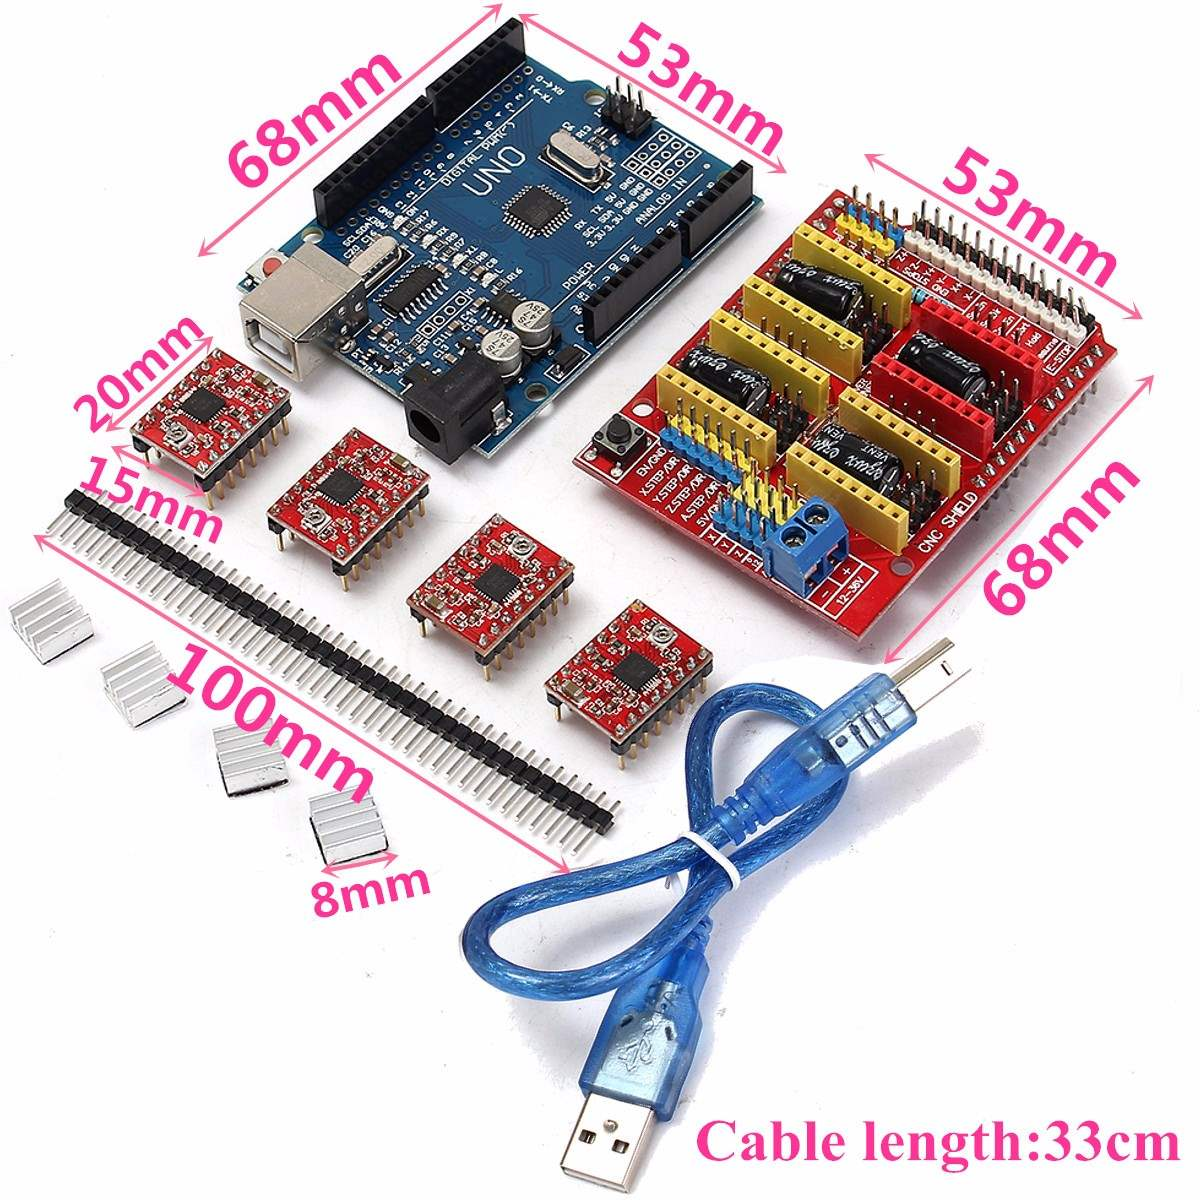 New Arrival V3.0 Engraver CNC Shield+Board+A4988 Stepper Motor Drivers For UNO R3 for Arduino New Electric Board(China (Mainland))